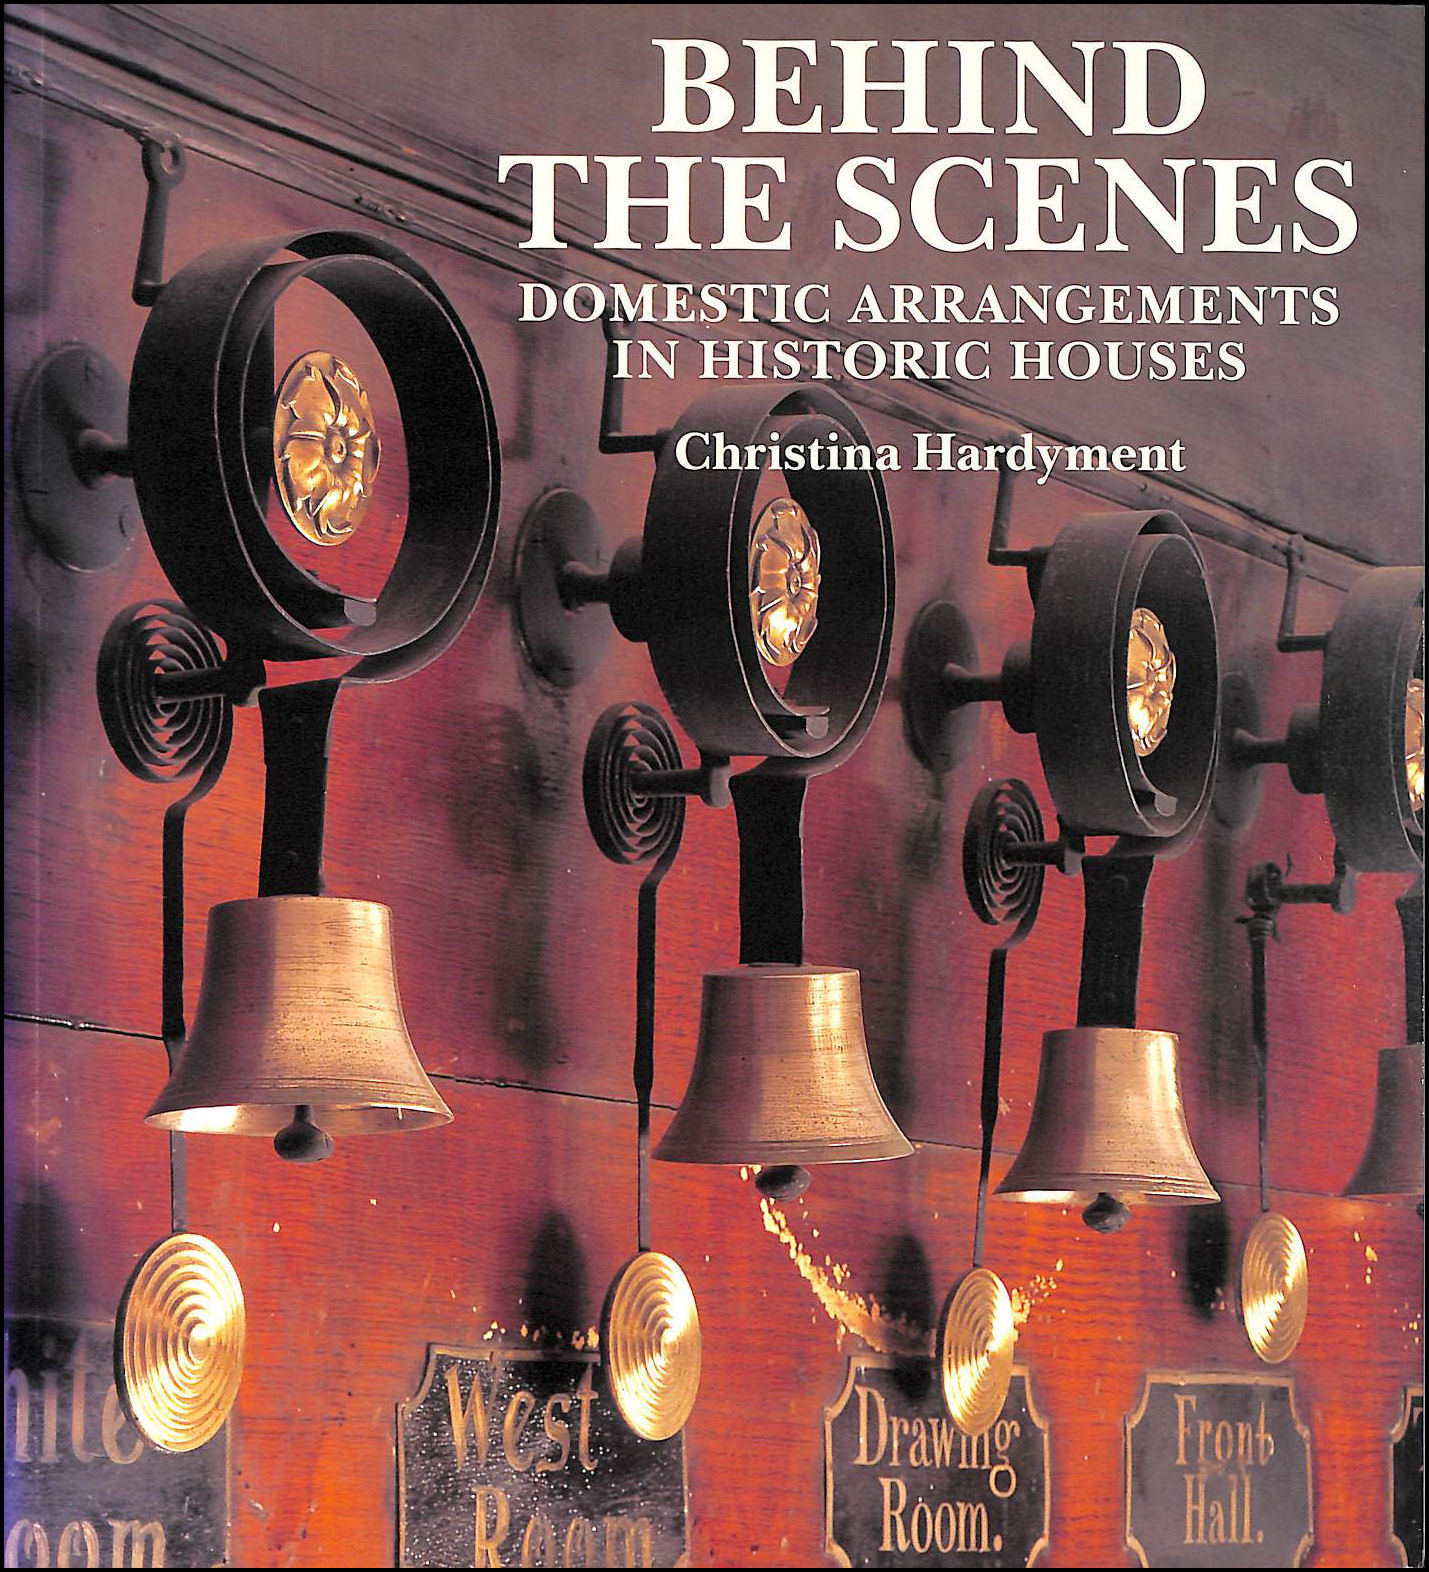 Behind the Scenes: Domestic Arrangements in Historic Houses, Hardyment, Christina